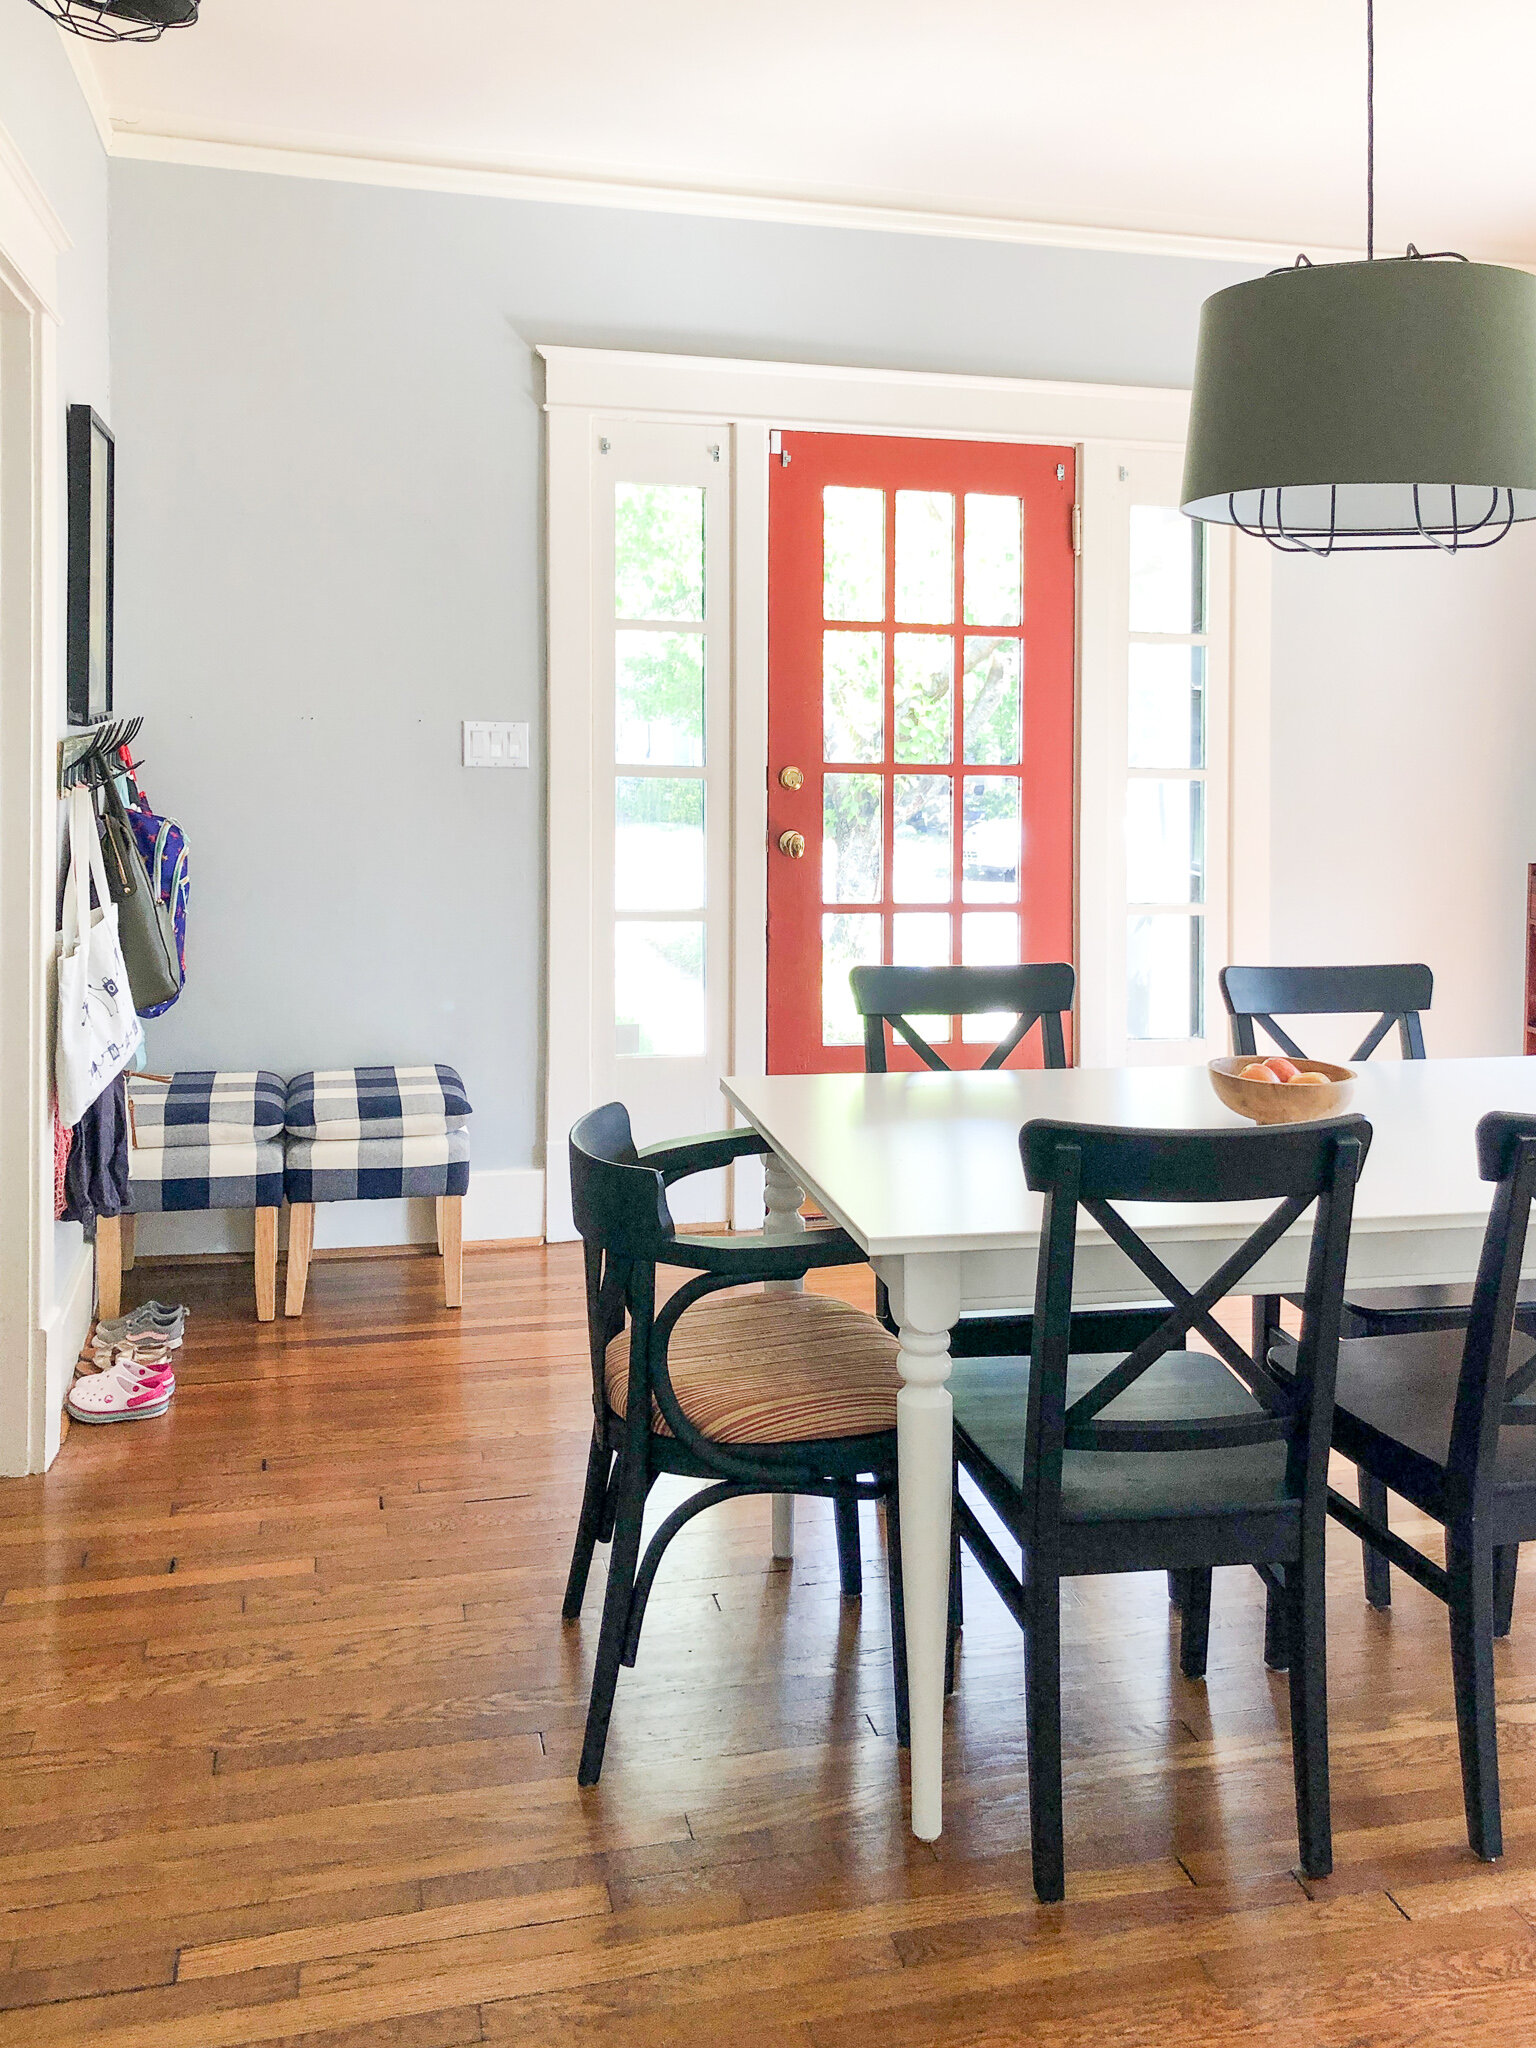 California Bungalow: Our dining room updates in our family-friendly 1920s home.  #SMMakeLifeBeautiful #interior123 #stylemuttspaces #ispymoderndiy #prettyandoverlooked #brightspaceswelove #collectedhome